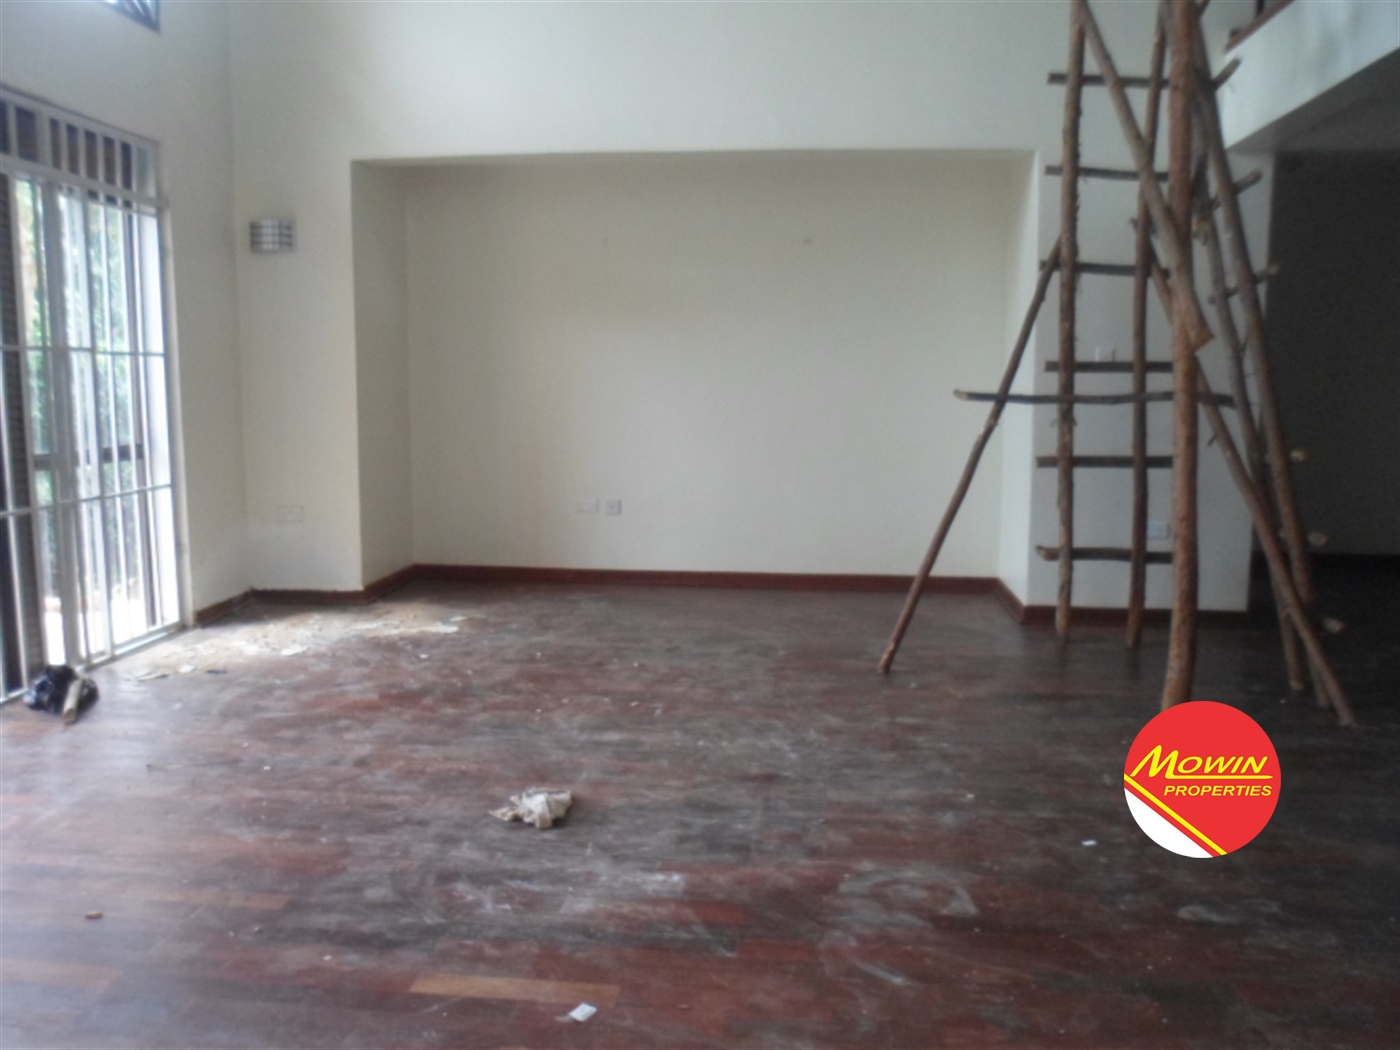 Storyed house for rent in Kololo Kampala